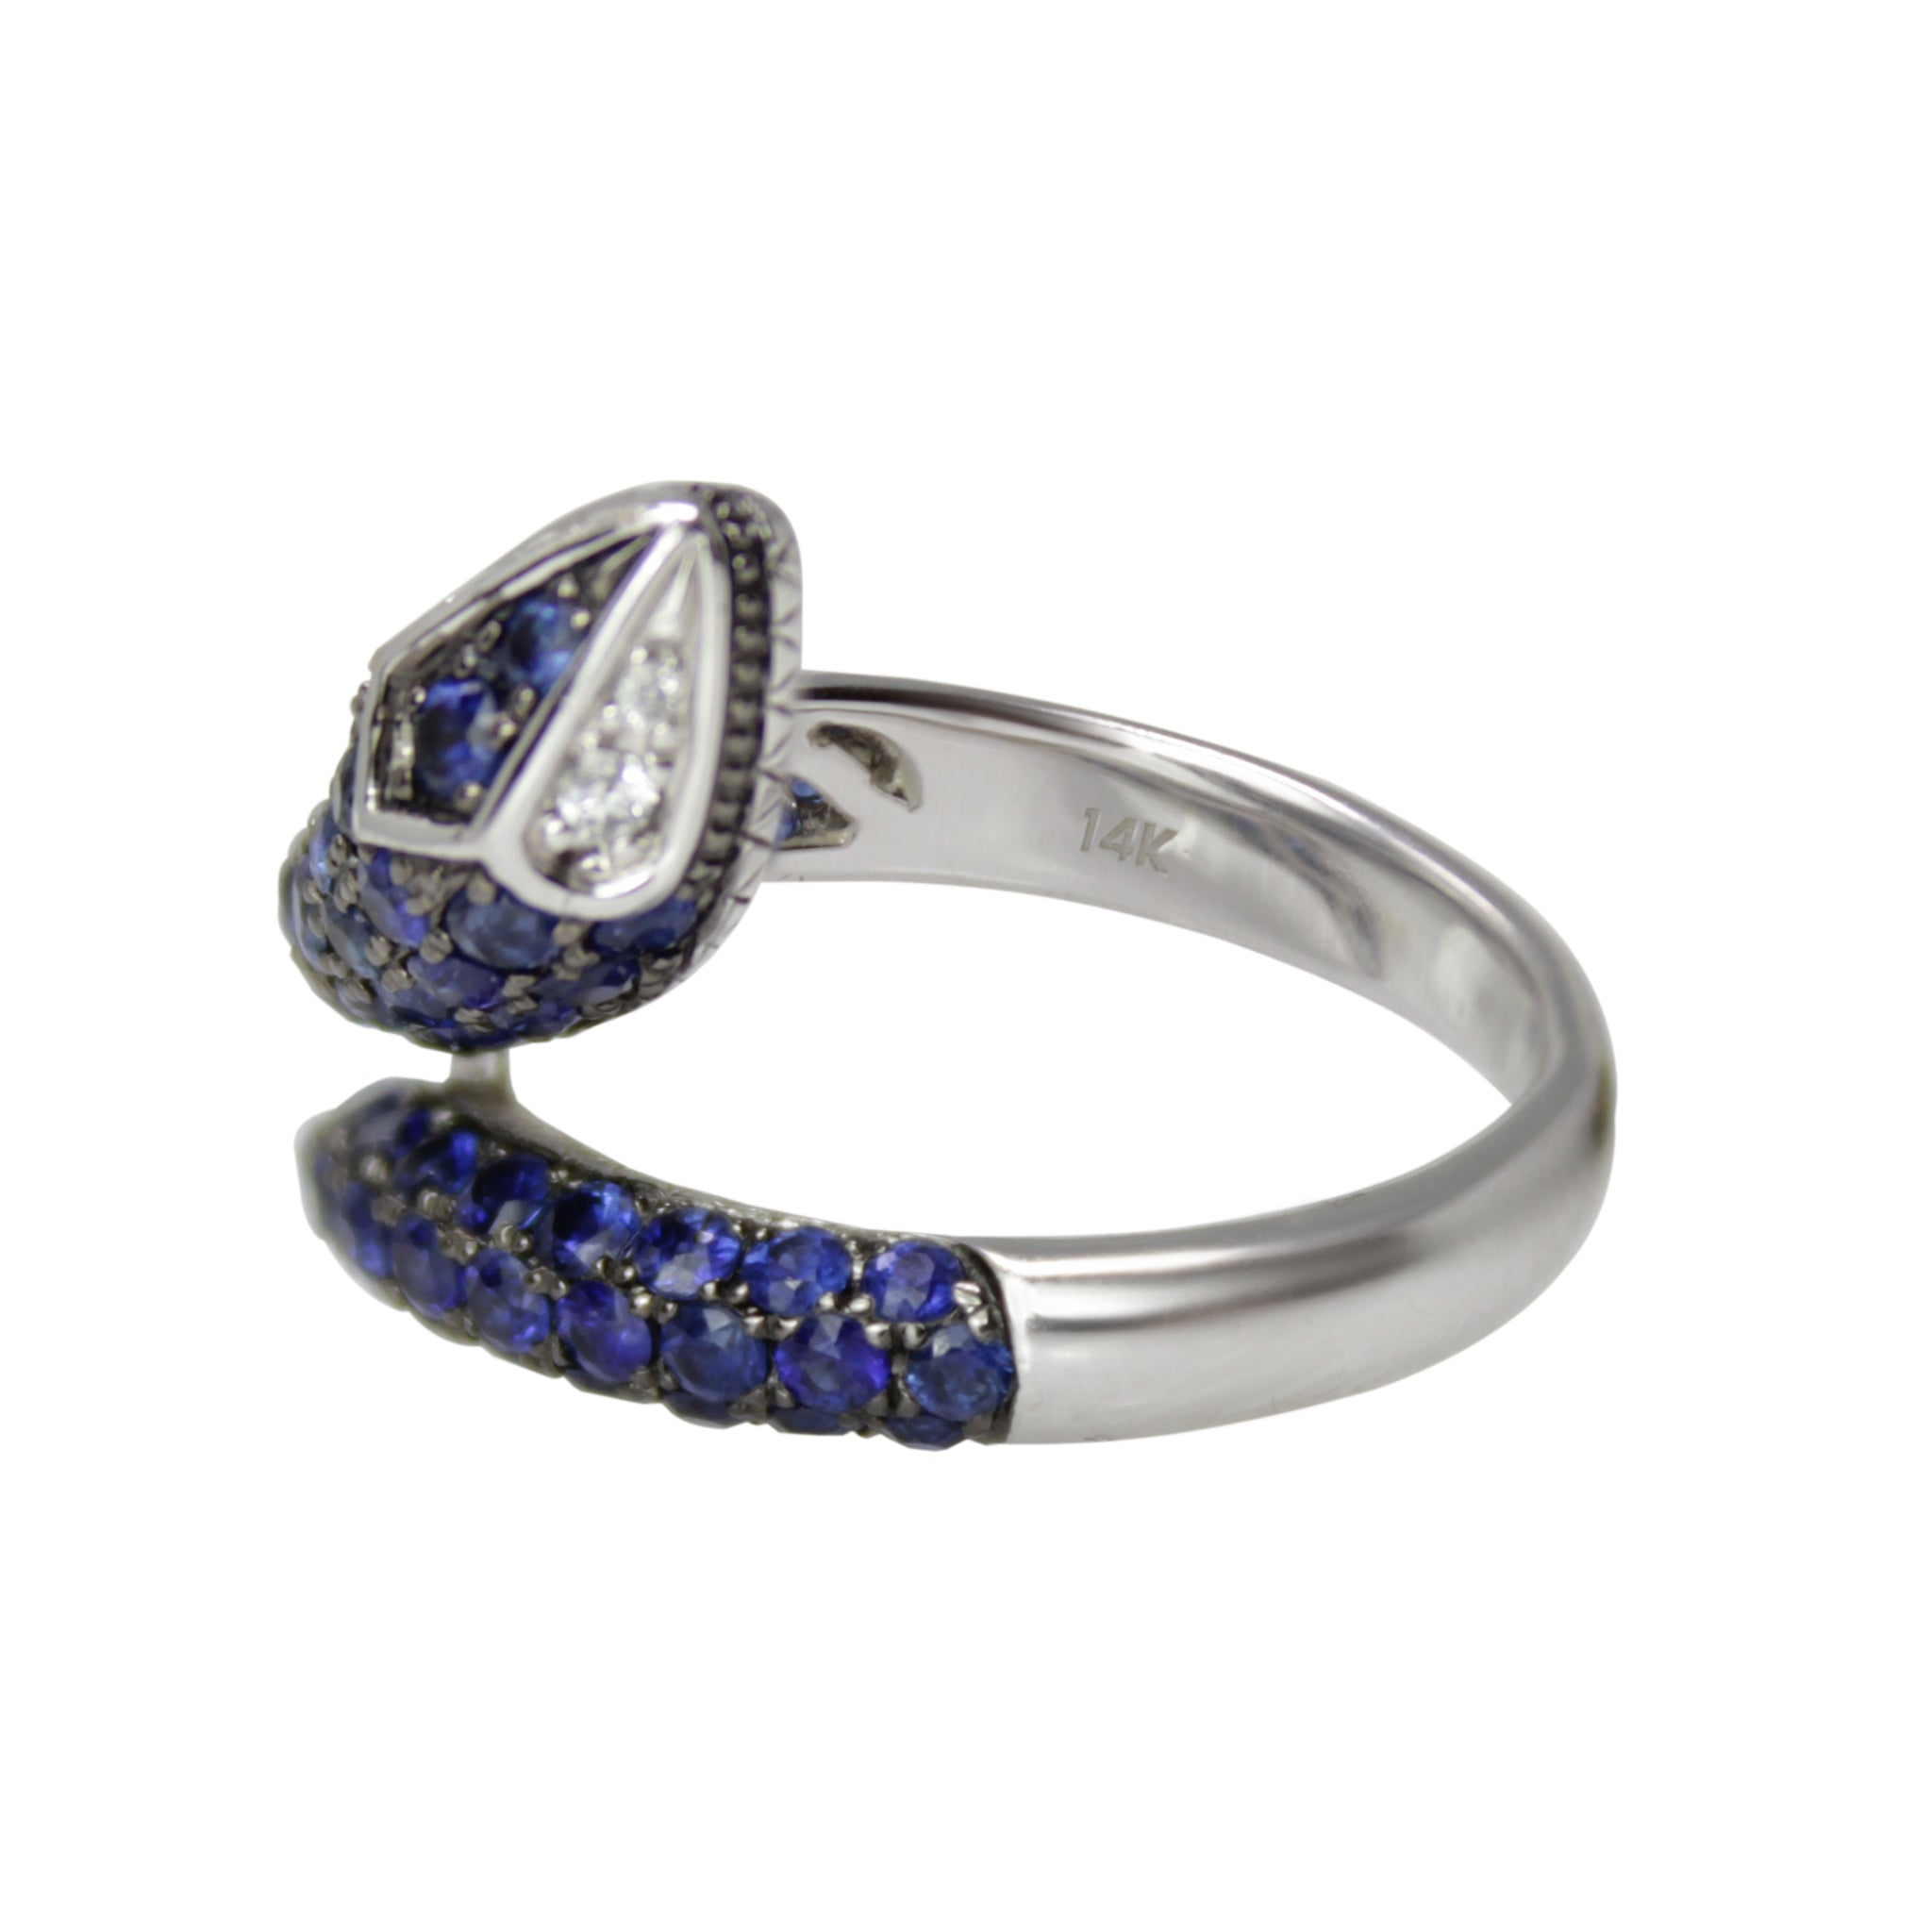 Snake of Wisdom Band - 14k White Gold Blue Sapphire and Diamond Serpent Wrap Ring